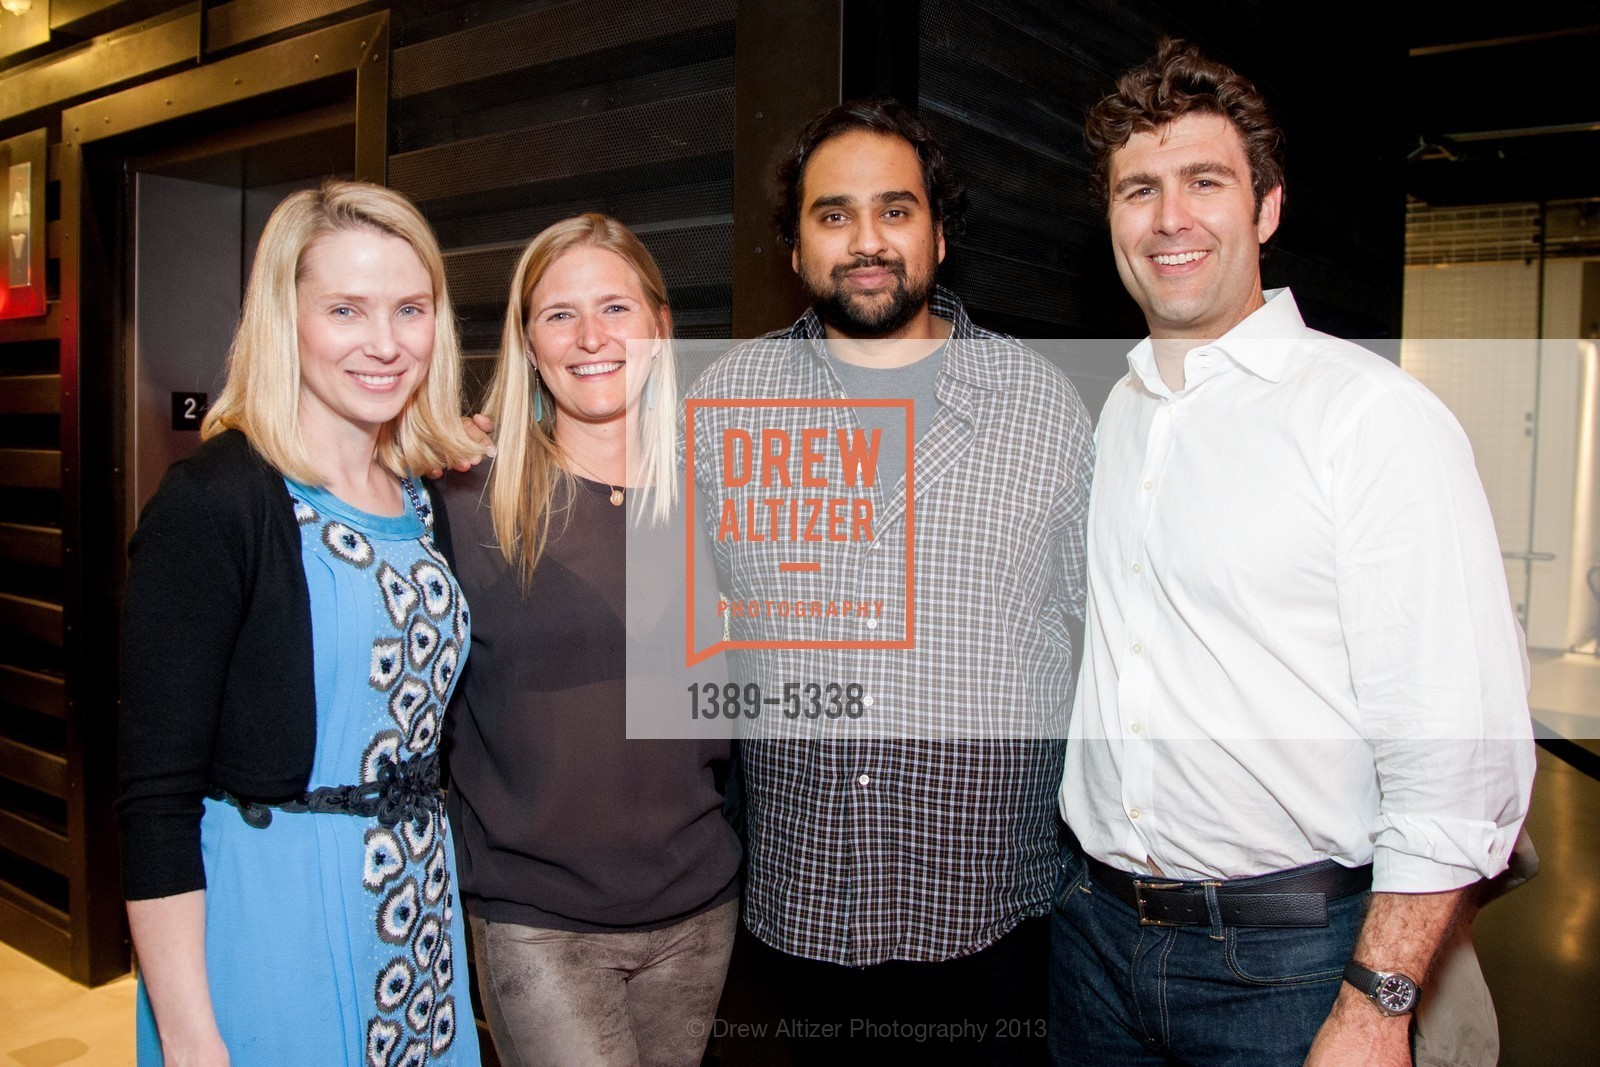 Marissa Mayer, Alicia Engstrom, Hosain Rahman, Zachary Bogue, Photo #1389-5338